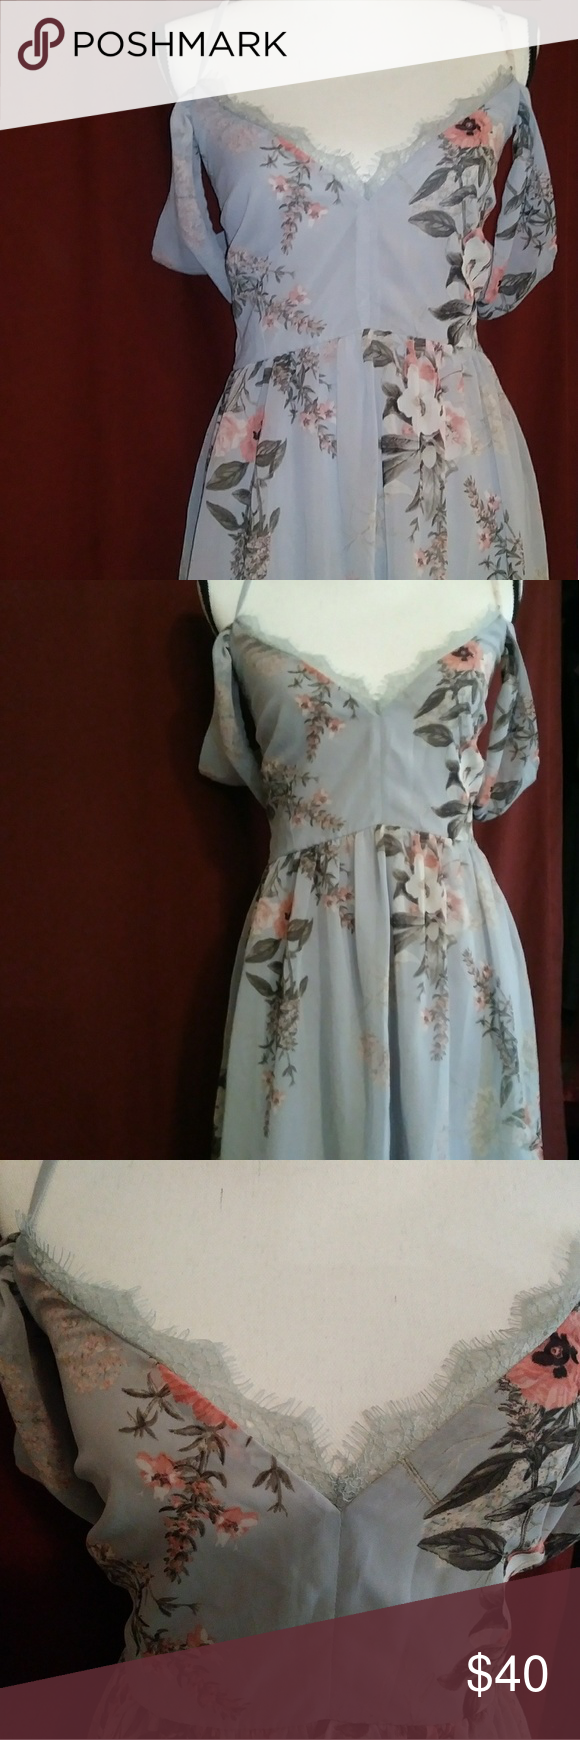 NWT Verona Light Blue Floral Print Off Shoulder L Details From Lulu s site.  Lulus Exclusive 7d30dcfd2